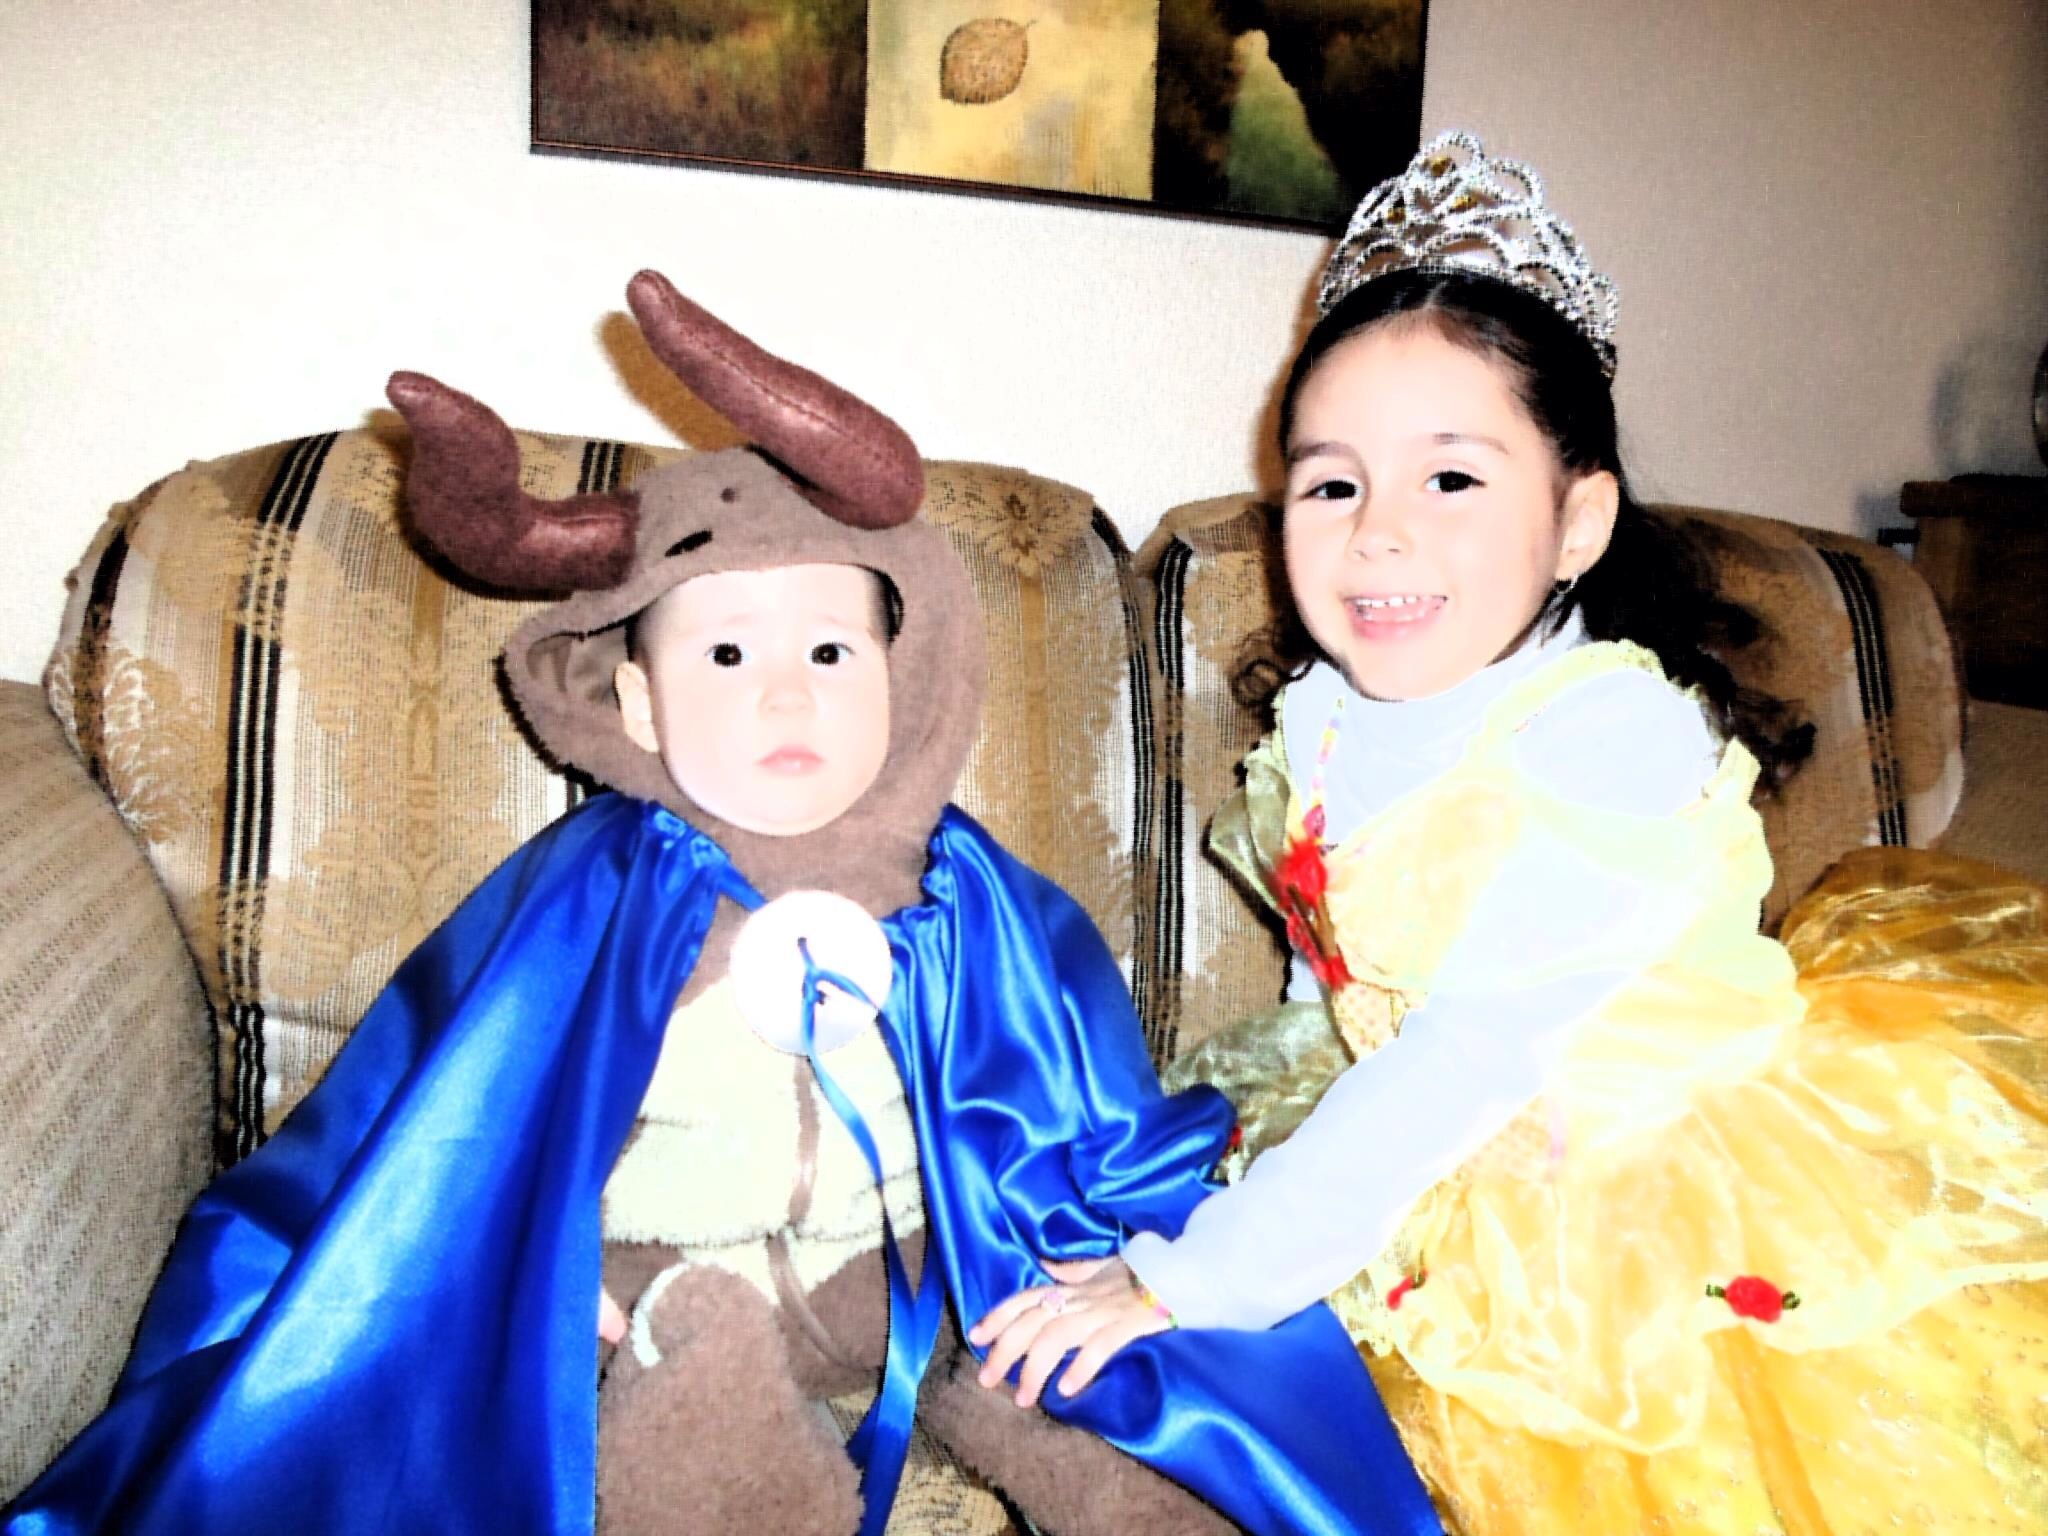 bella y bestia beauty and the beast